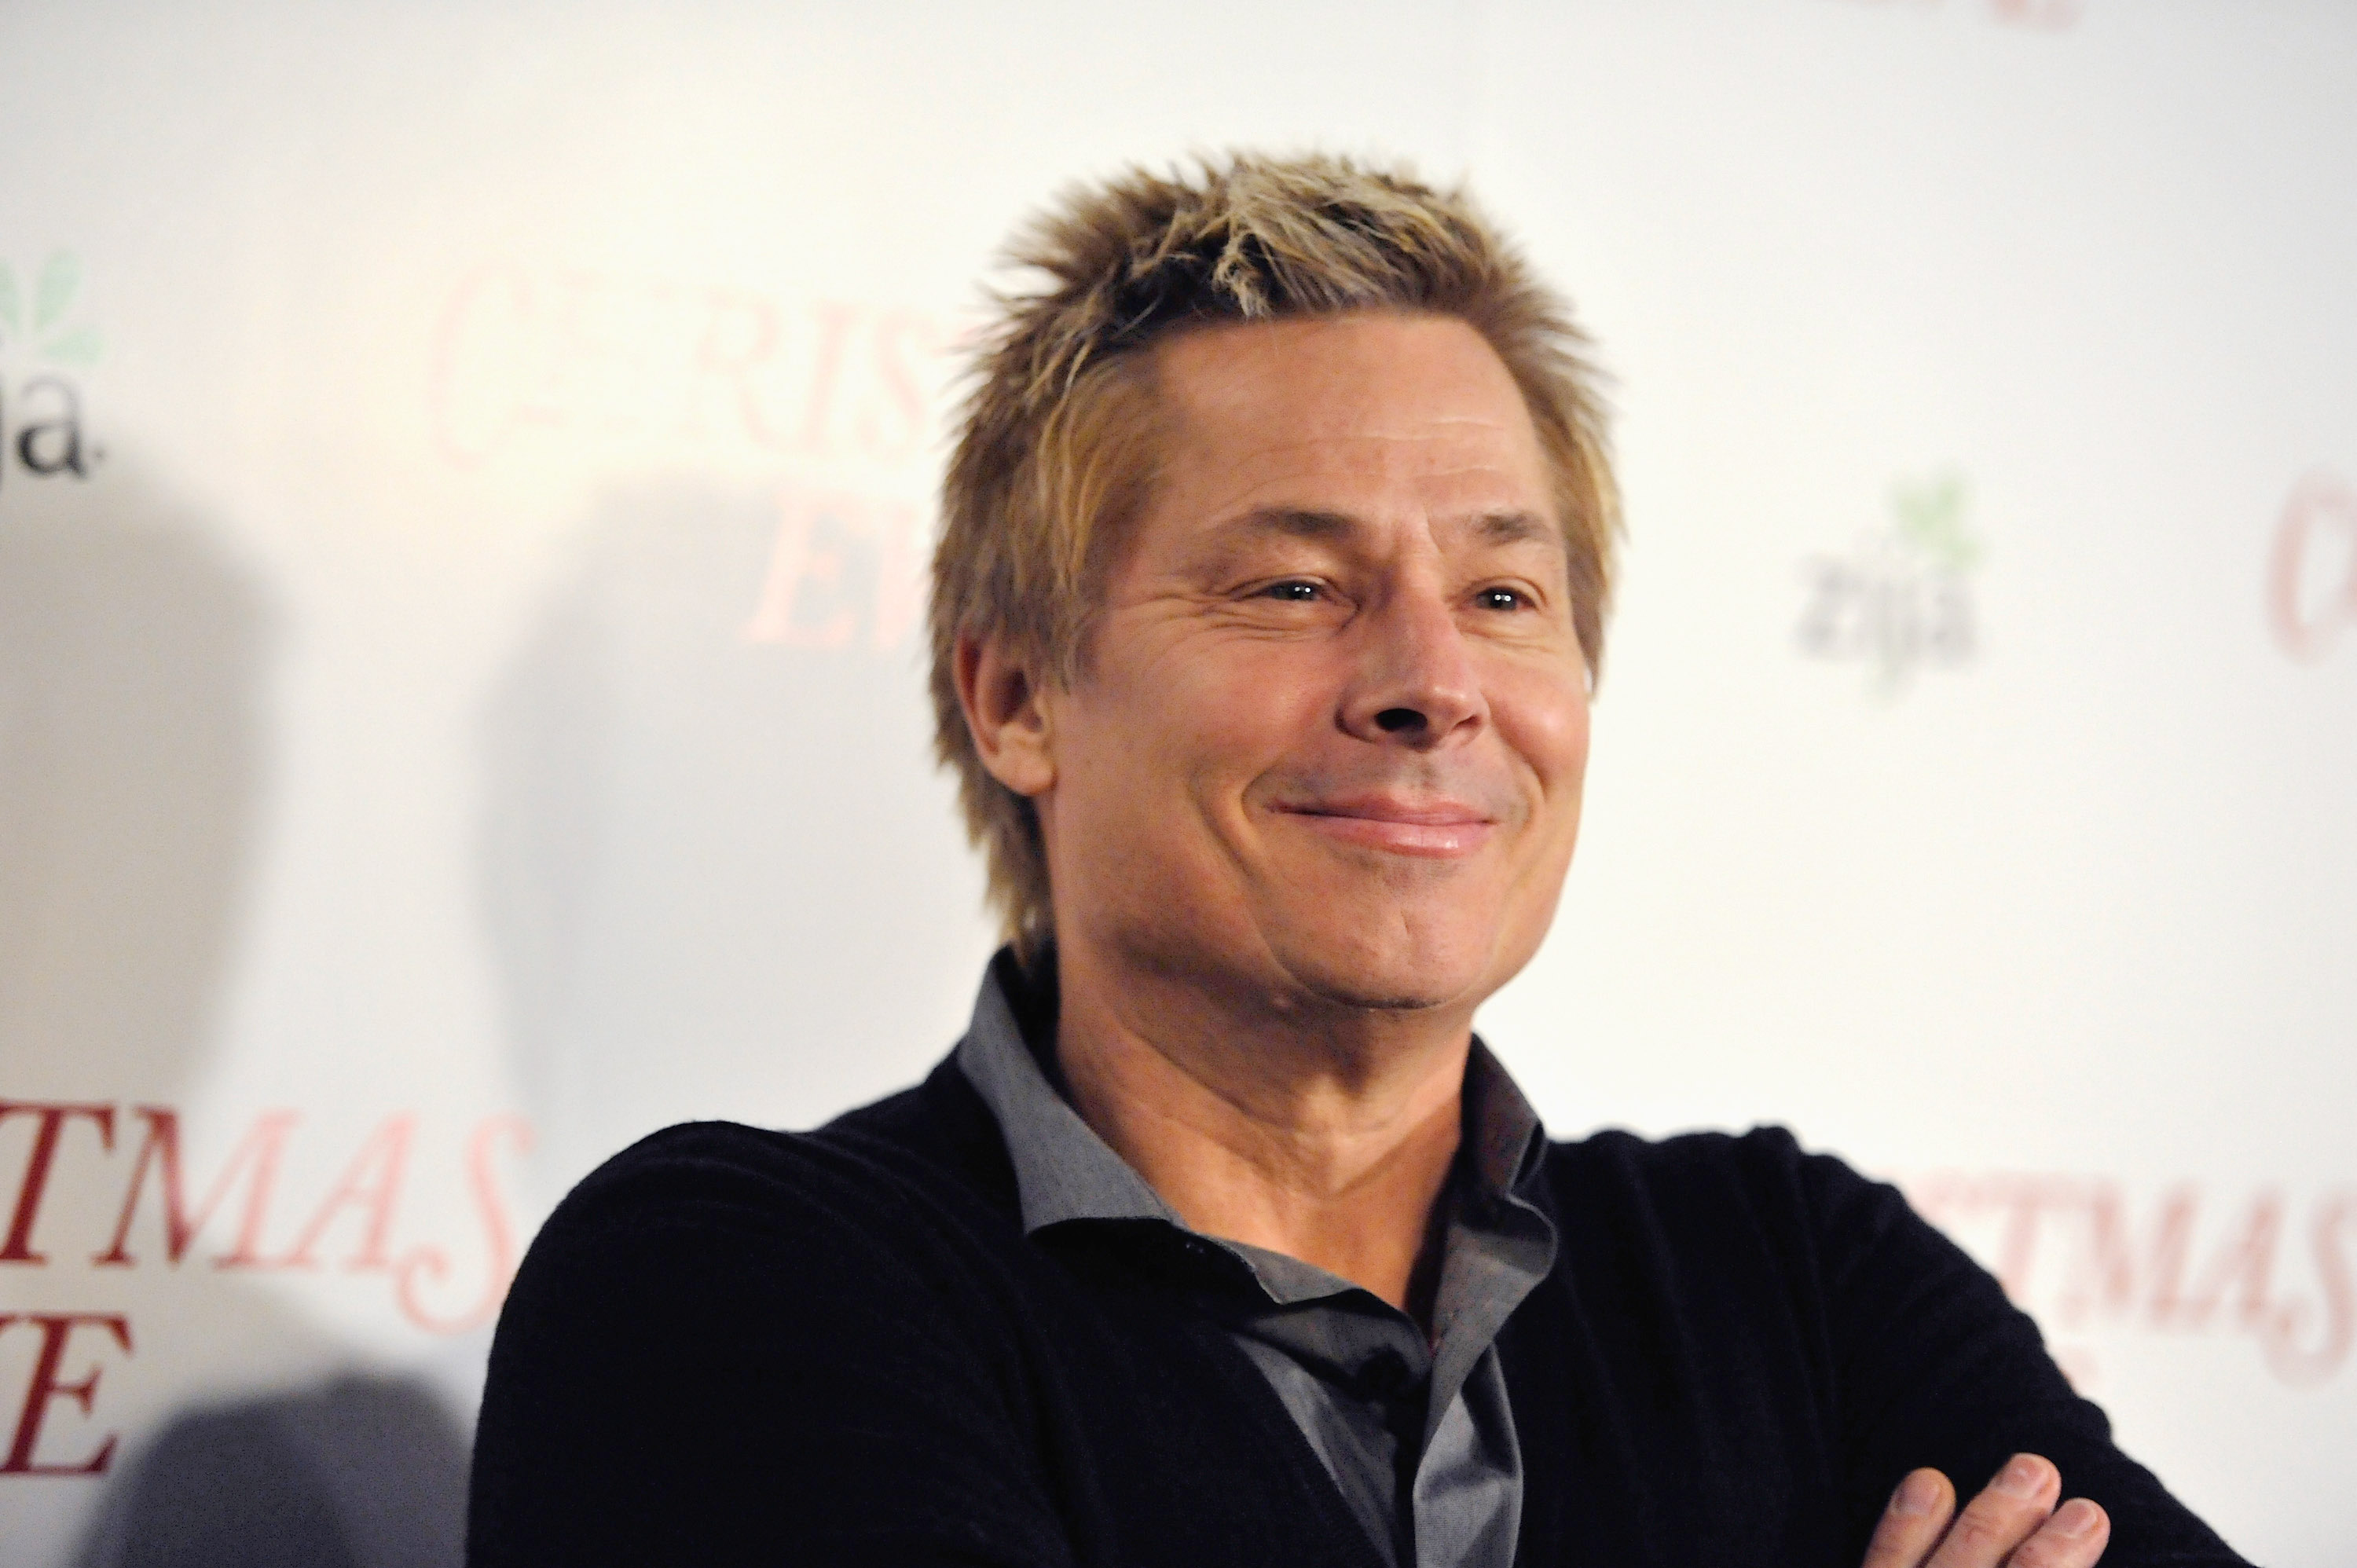 """HOLLYWOOD, CA - DECEMBER 02: Kato Kaelin attends the world premiere of Unstuck's """"Christmas Eve"""" at ArcLight Hollywood on December 2, 2015 in Hollywood, California. (Photo by Michael Tullberg/Getty Images)"""